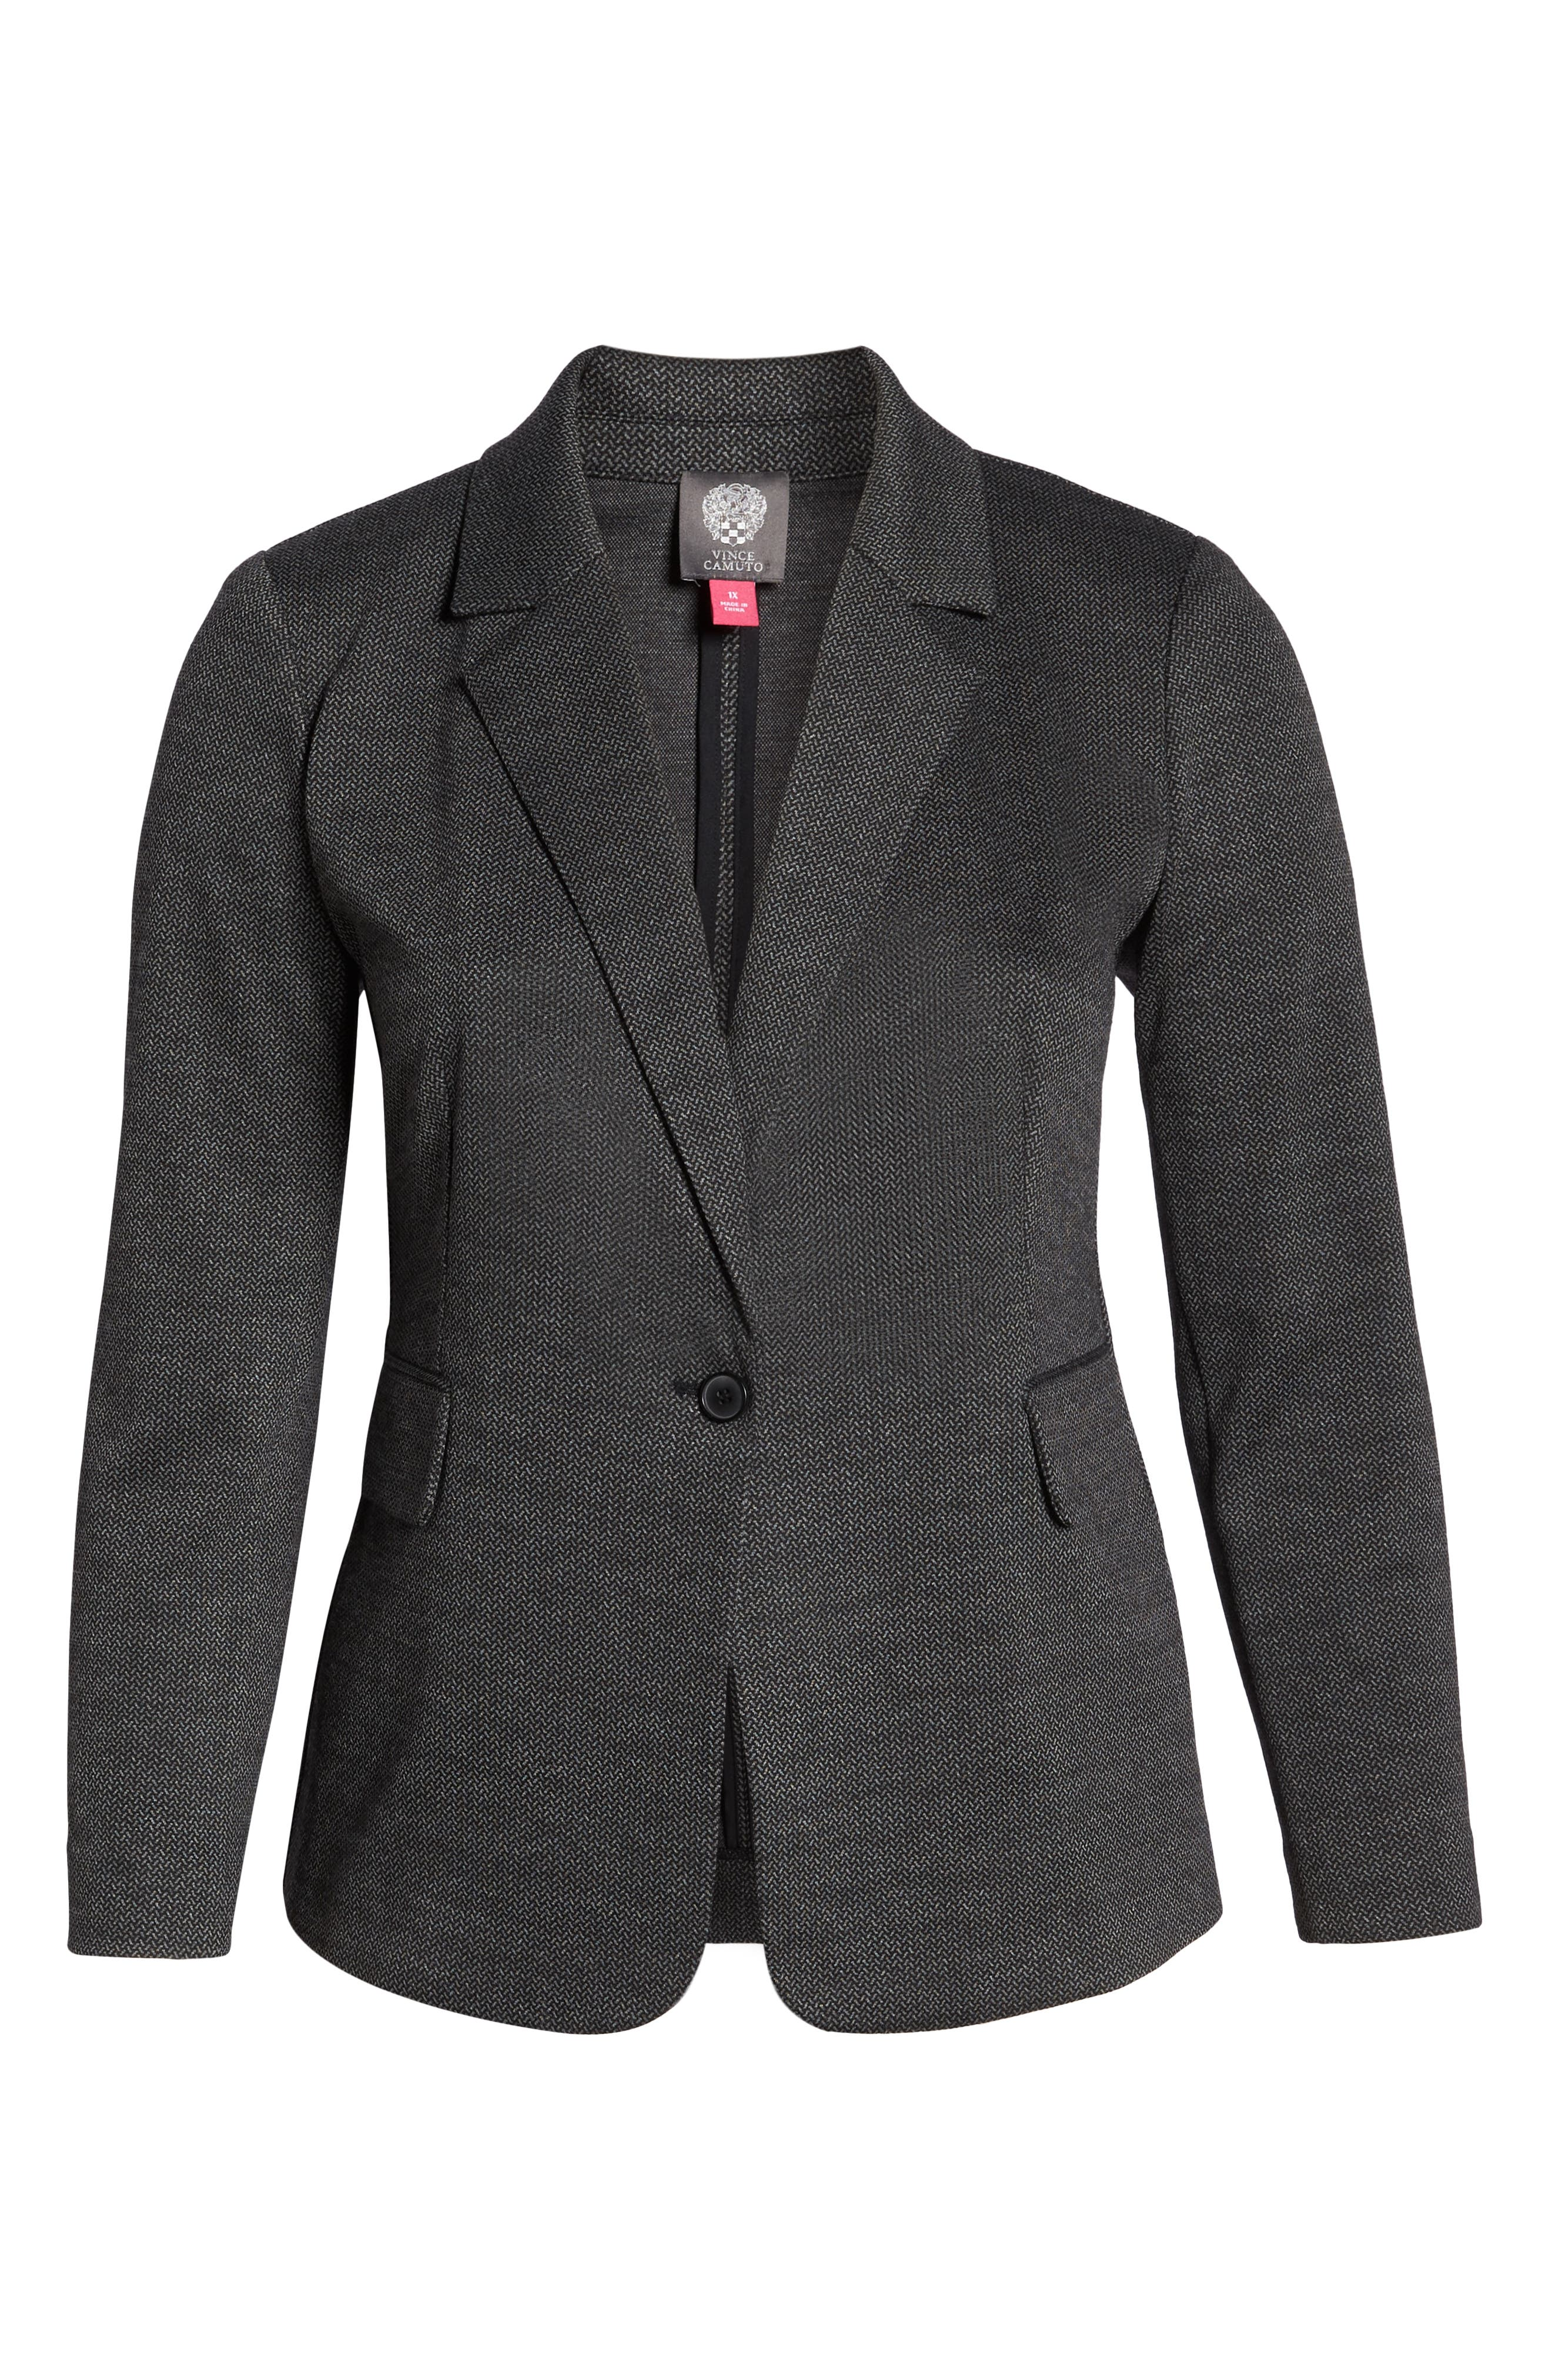 VINCE CAMUTO,                             Mélange Herringbone Single Button Blazer,                             Alternate thumbnail 6, color,                             RICH BLACK